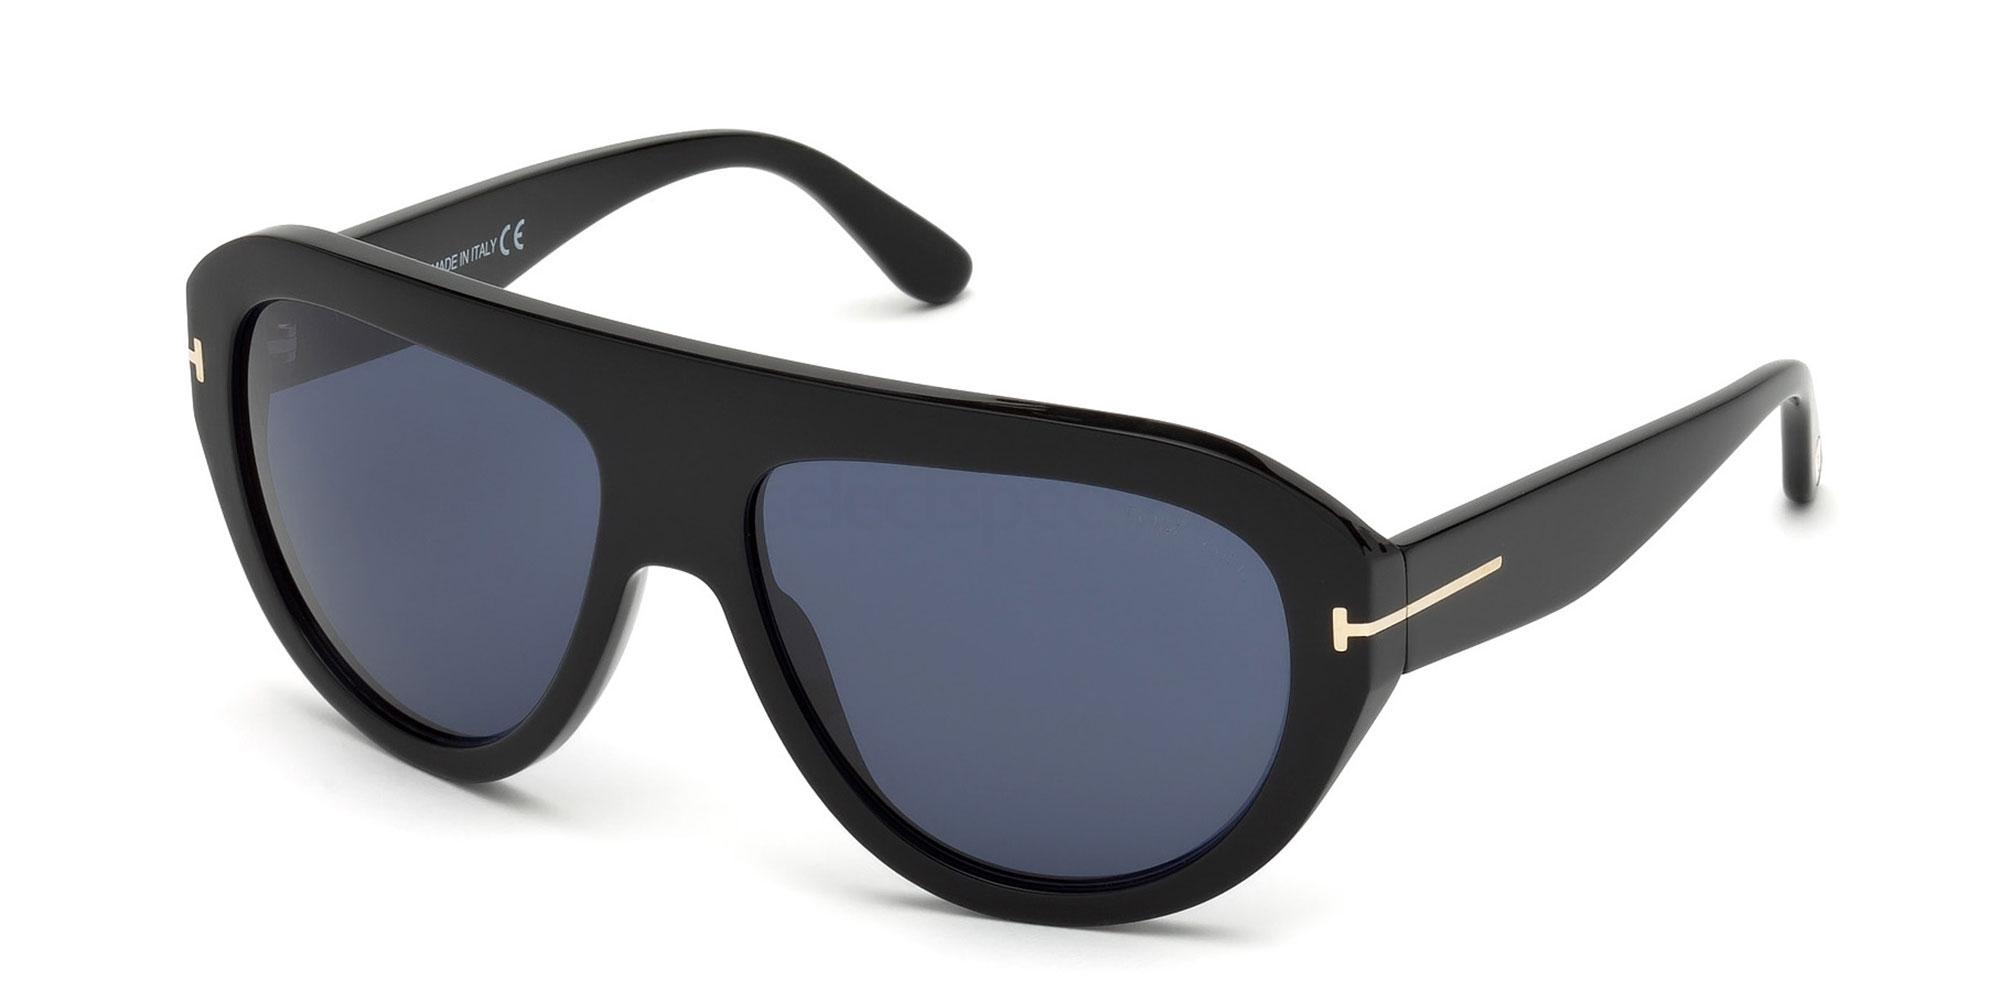 01V FT0589 Sunglasses, Tom Ford